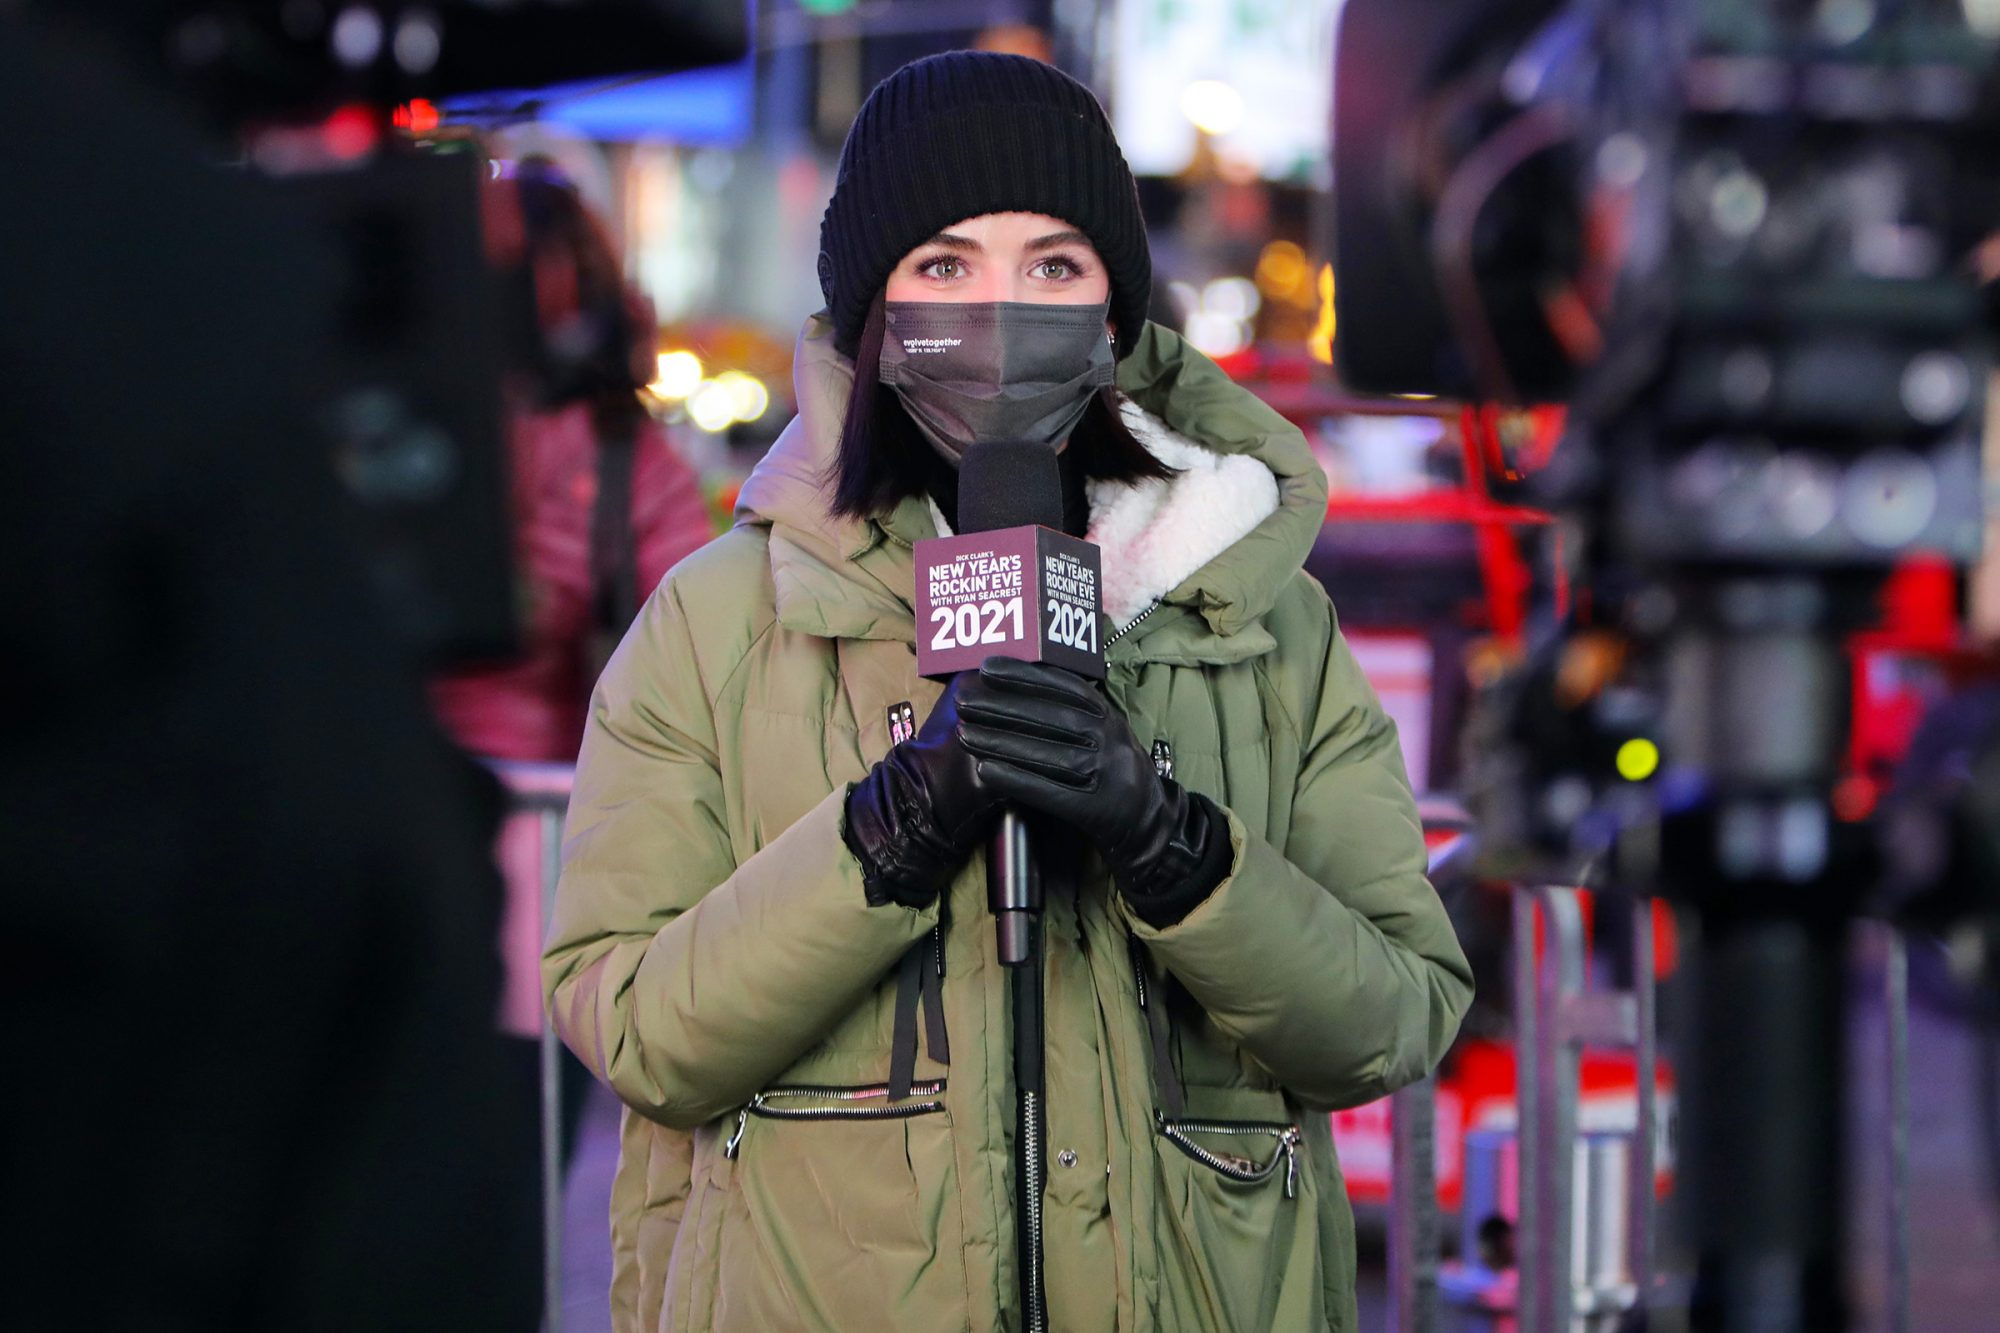 Lucy Hale is seen on December 30, 2020 in New York City